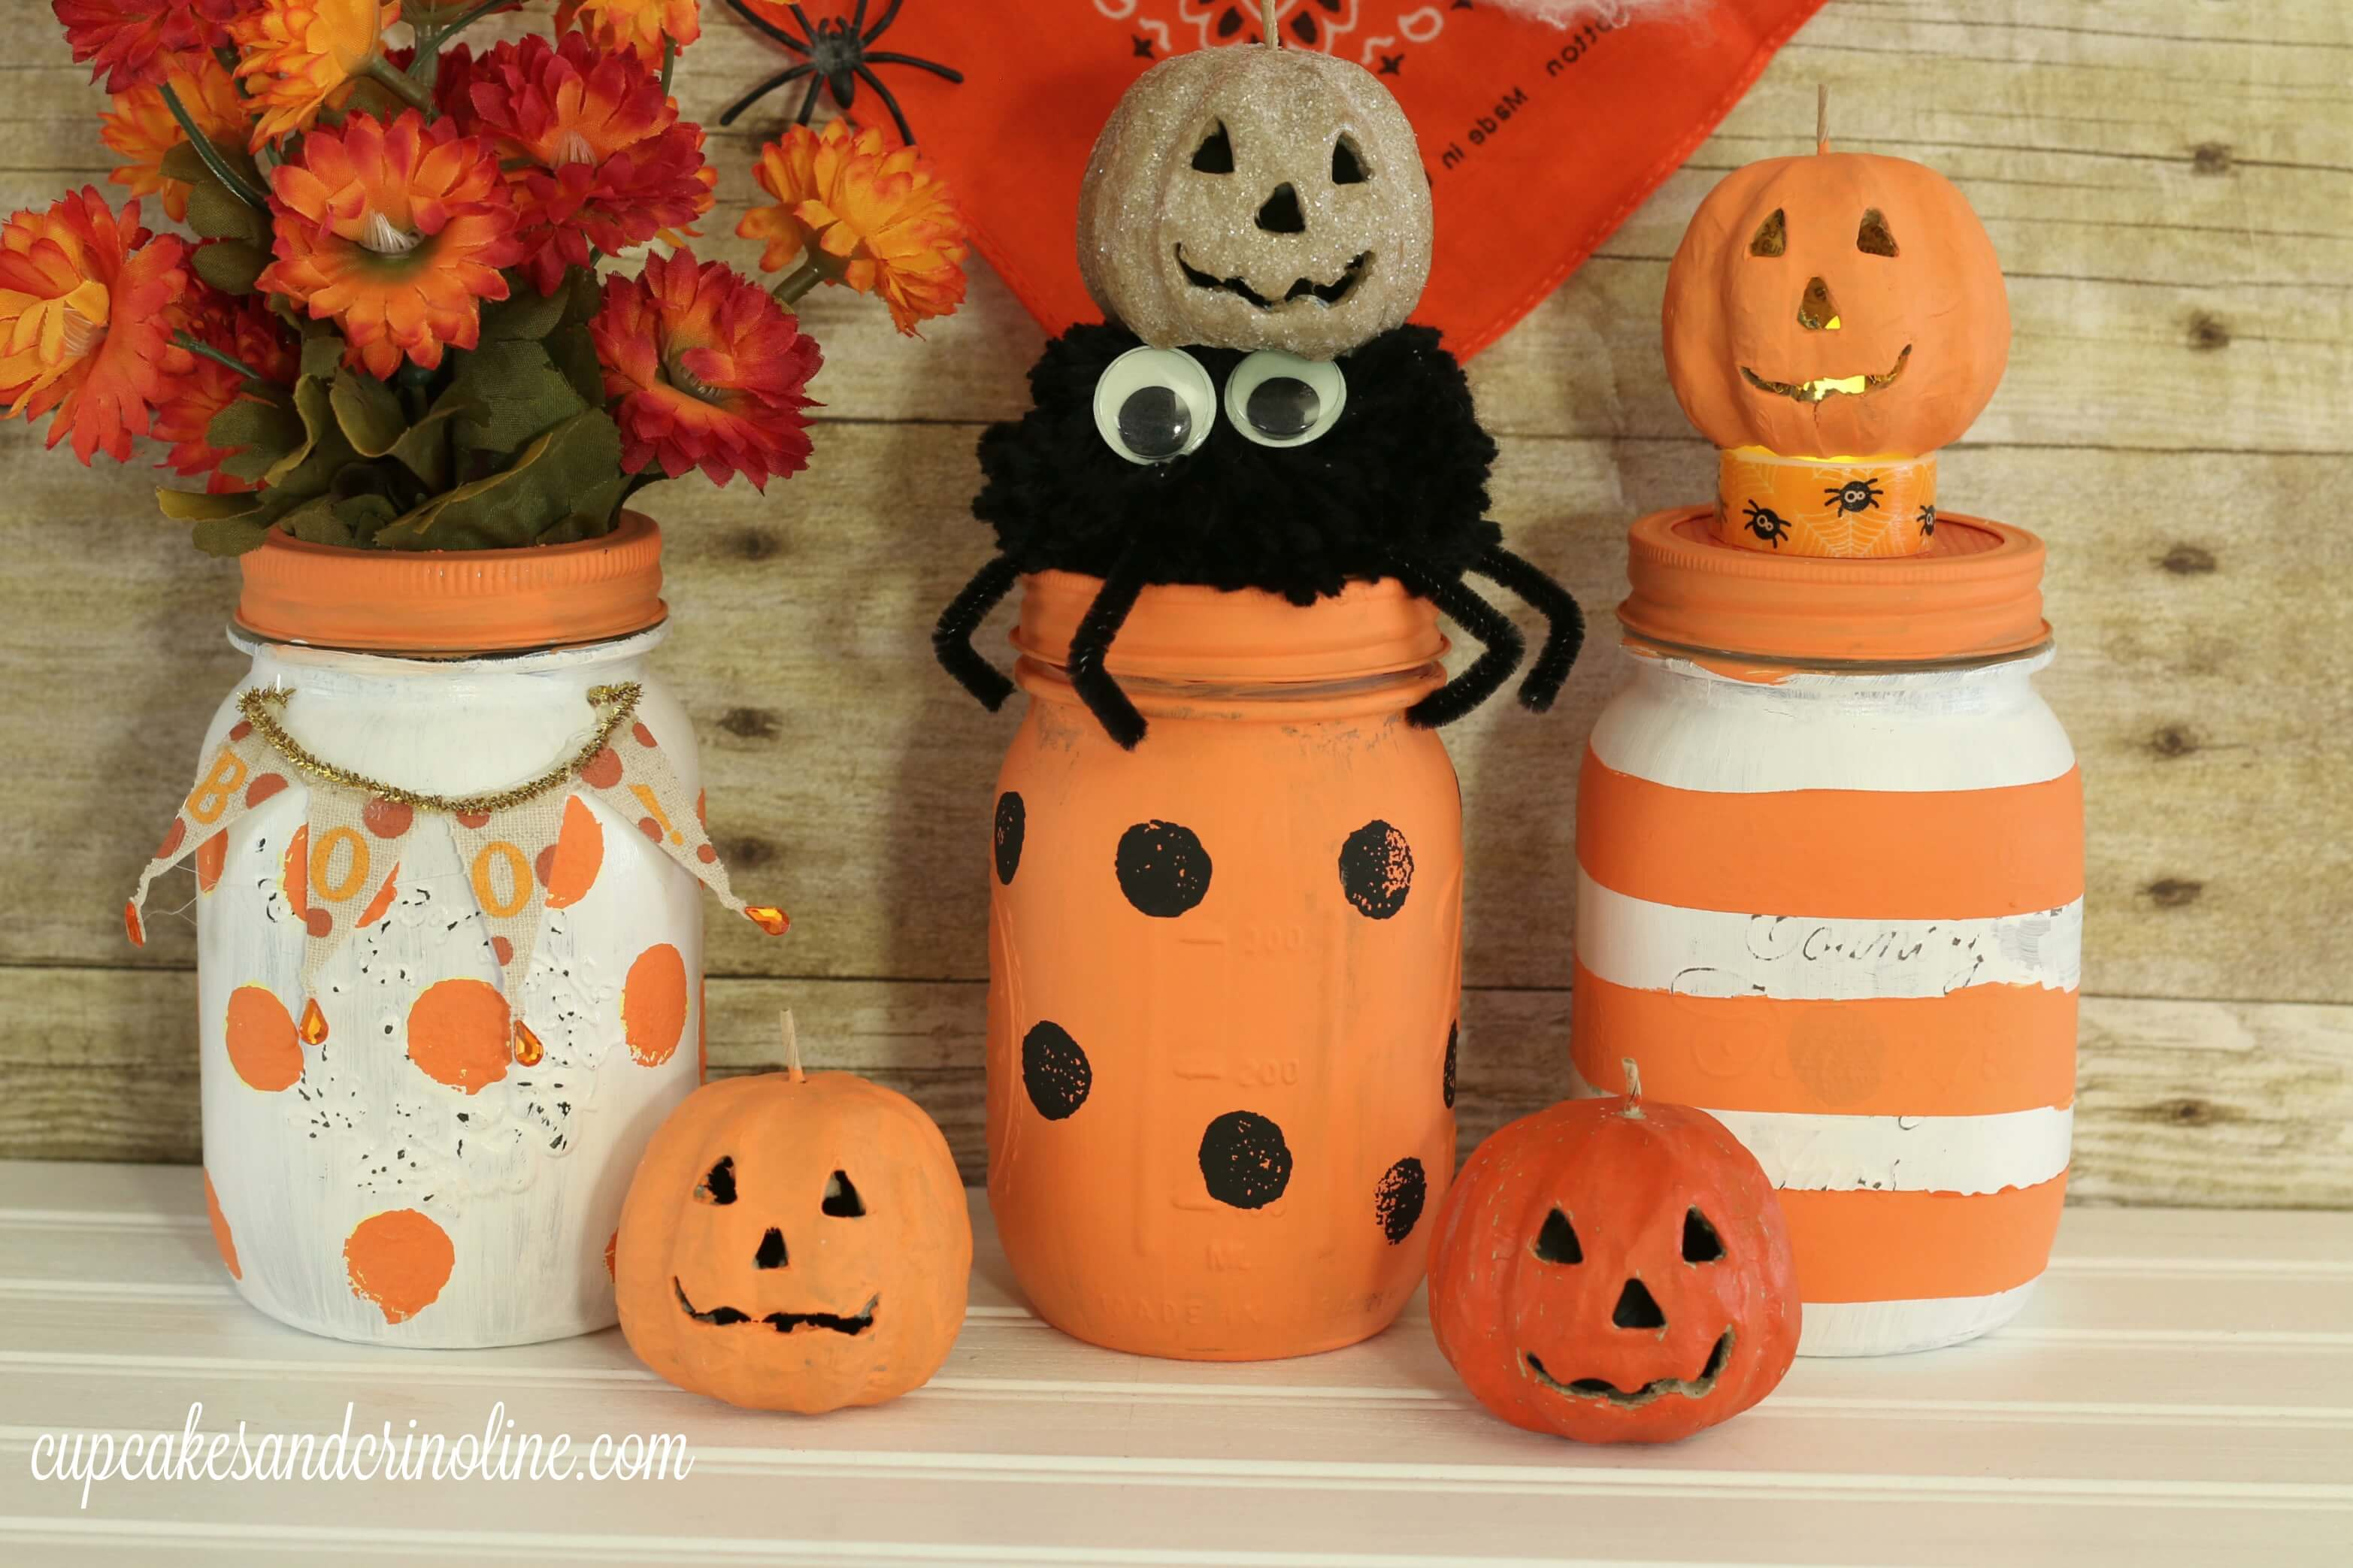 Mason jars make for some of the best DIY projects